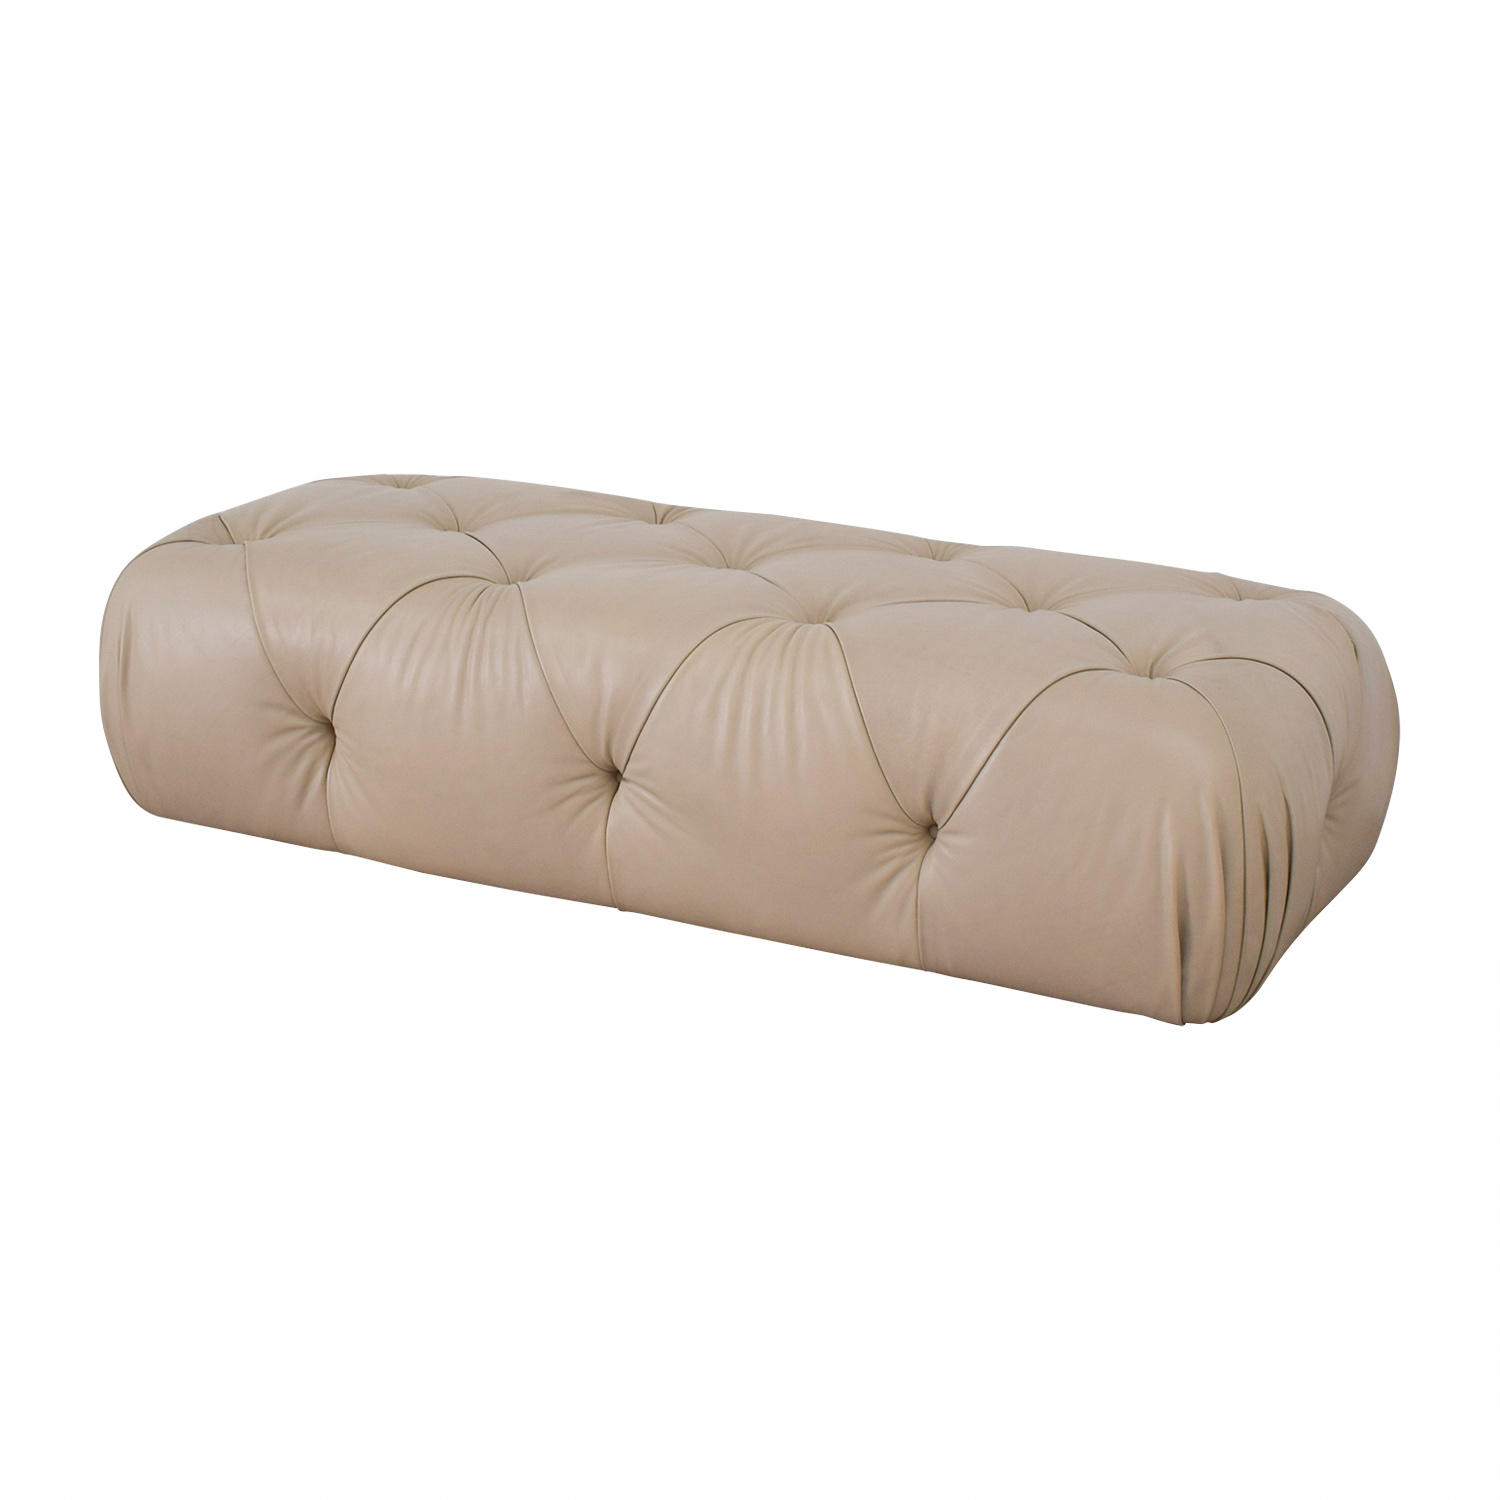 buy Furniture Masters Furniture Masters Tufted Beige Ottoman online